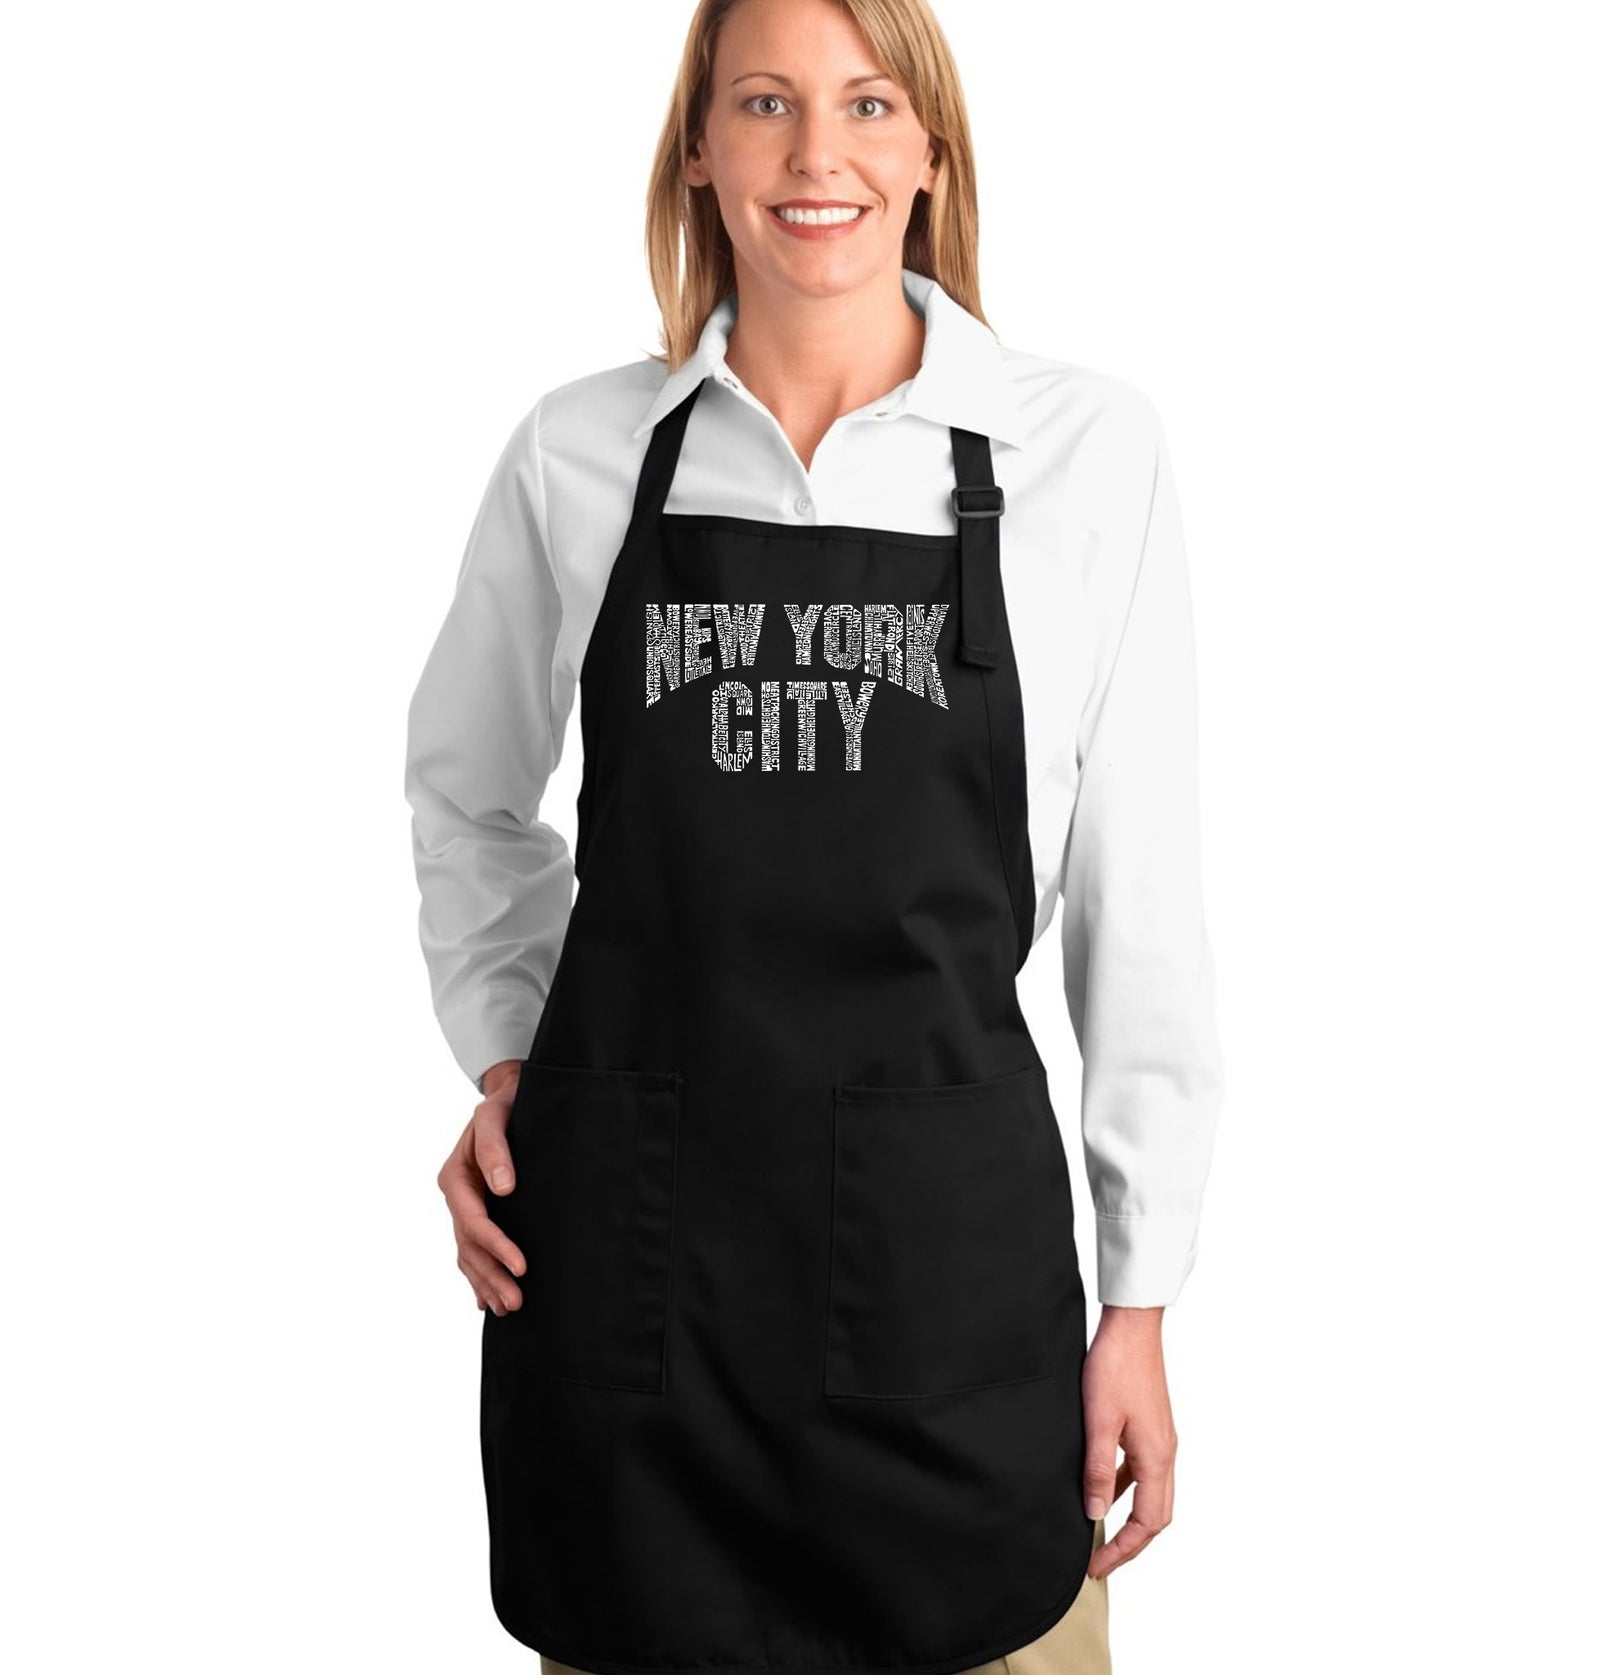 Full Length Apron - NYC NEIGHBORHOODS